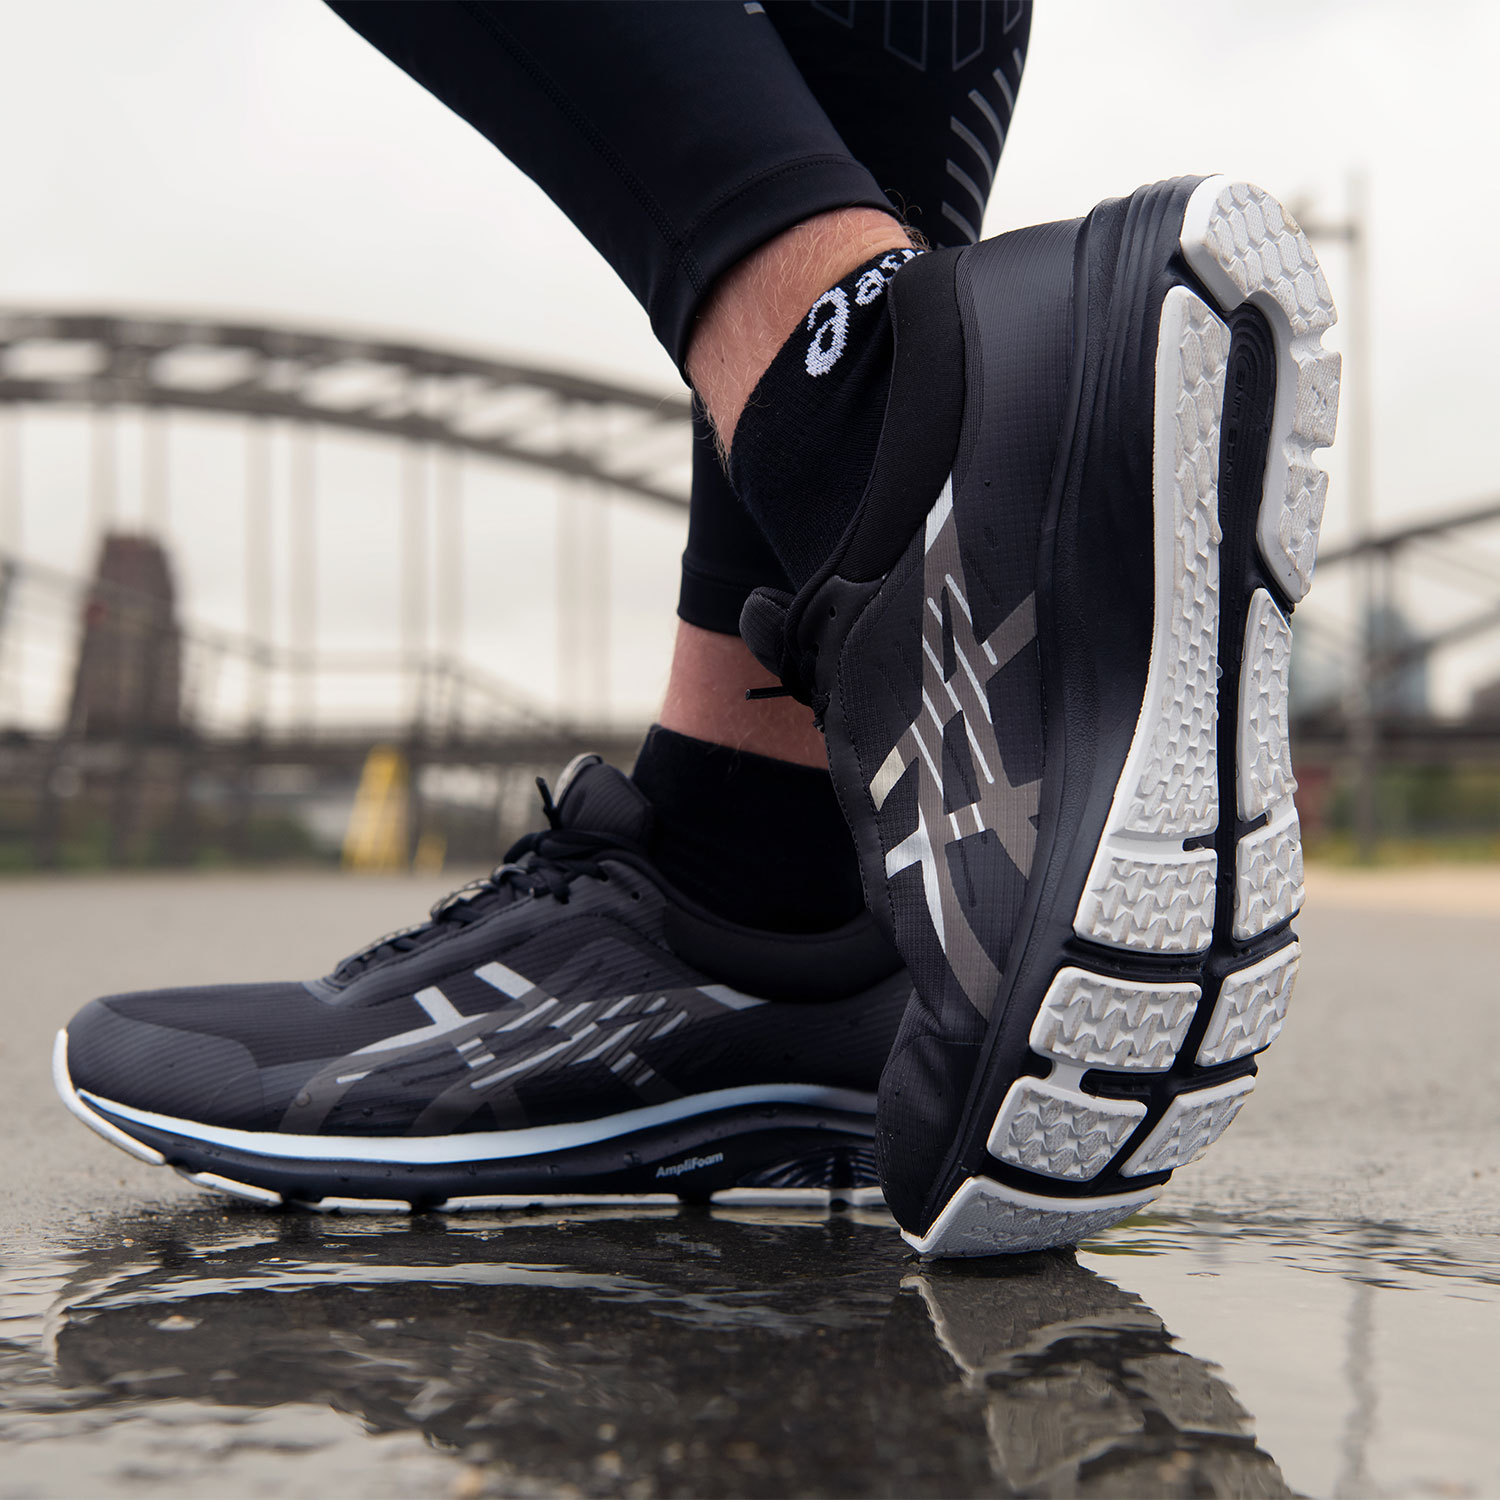 Asics Gel Pulse 12 AWL - Graphite Grey/Pure Silver